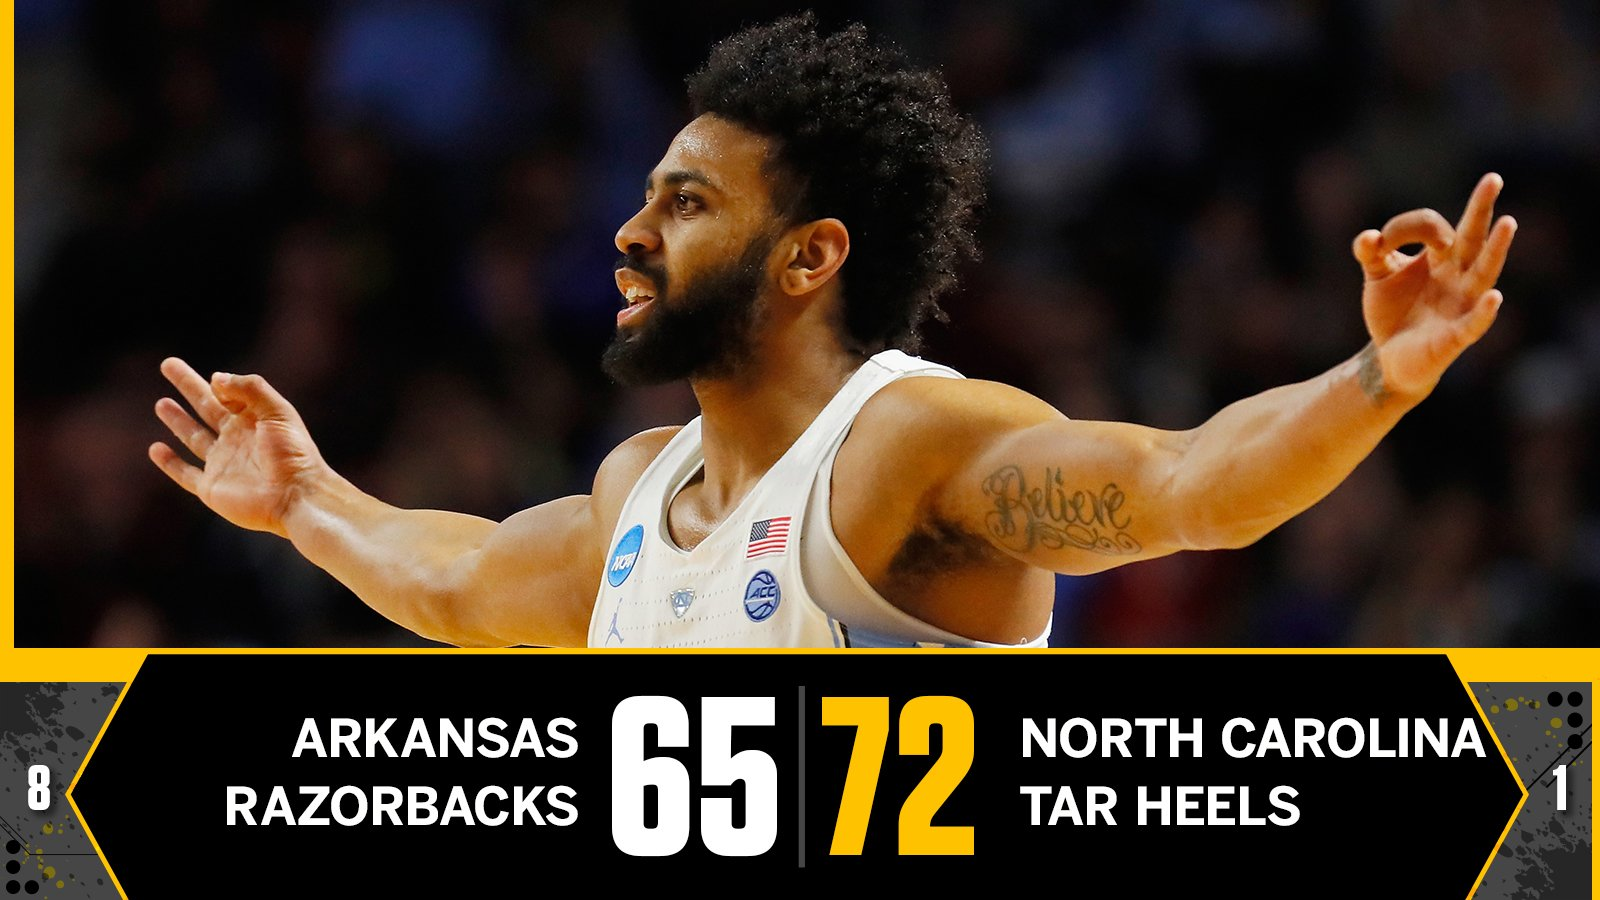 Phew!  North Carolina survives a huge scare against 8-seed Arkansas, advances to face Butler in the Sweet 16. https://t.co/NIsaH9Lzyo